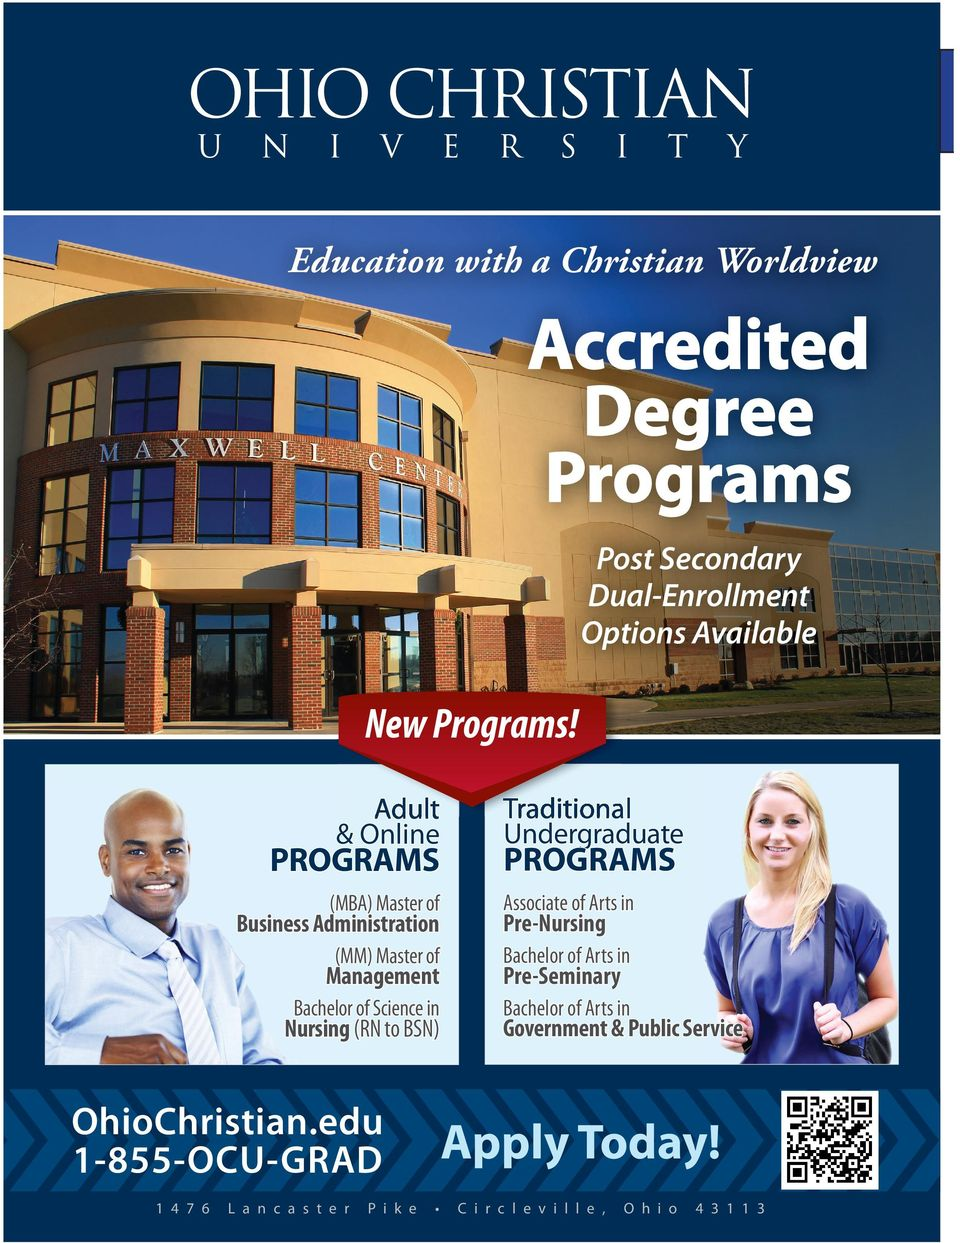 Science in Bachelor of Arts in PROGRAMS Business Administration Management Nursing (RN to BSN) OhioChristian.